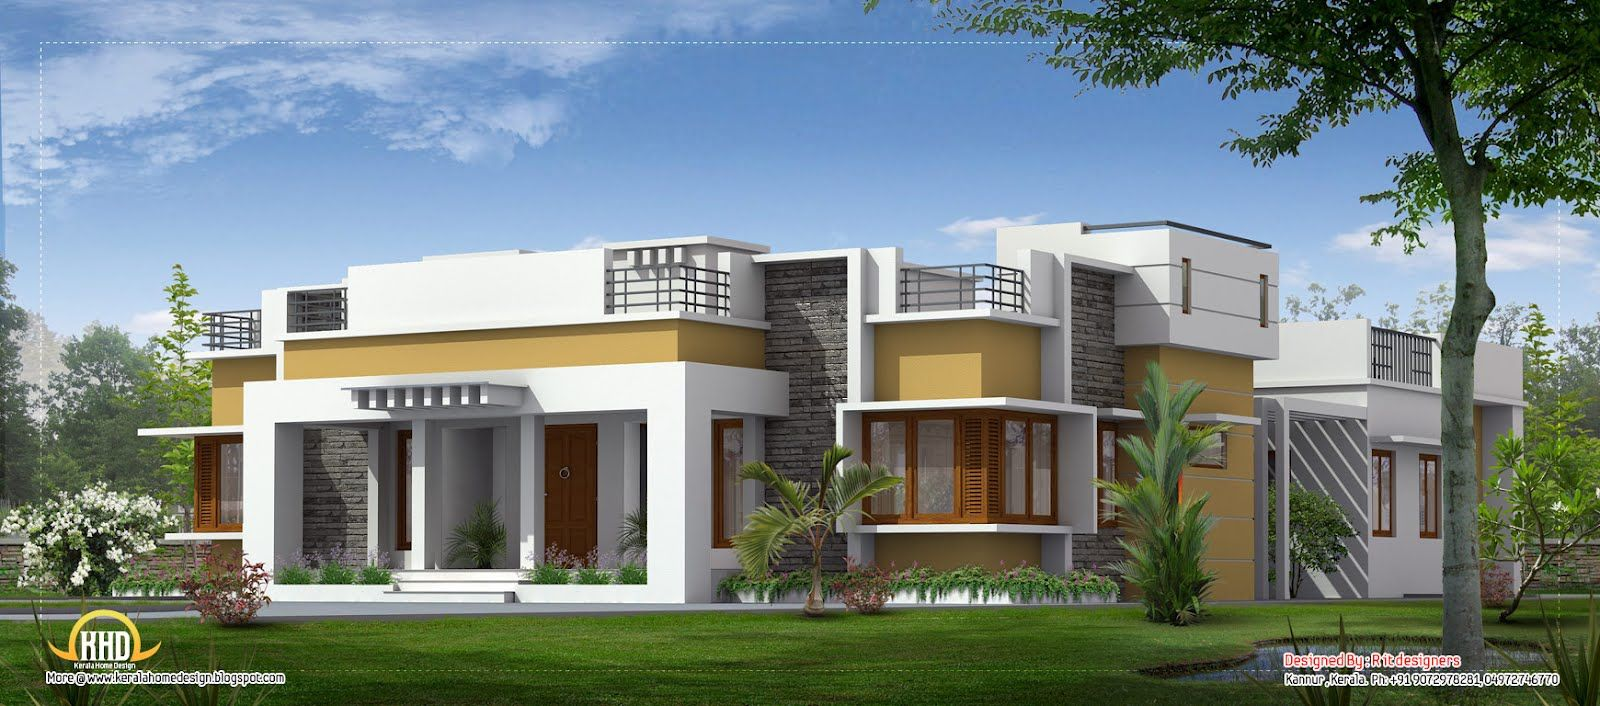 single level designer home | Single Floor House Plans | Design ...